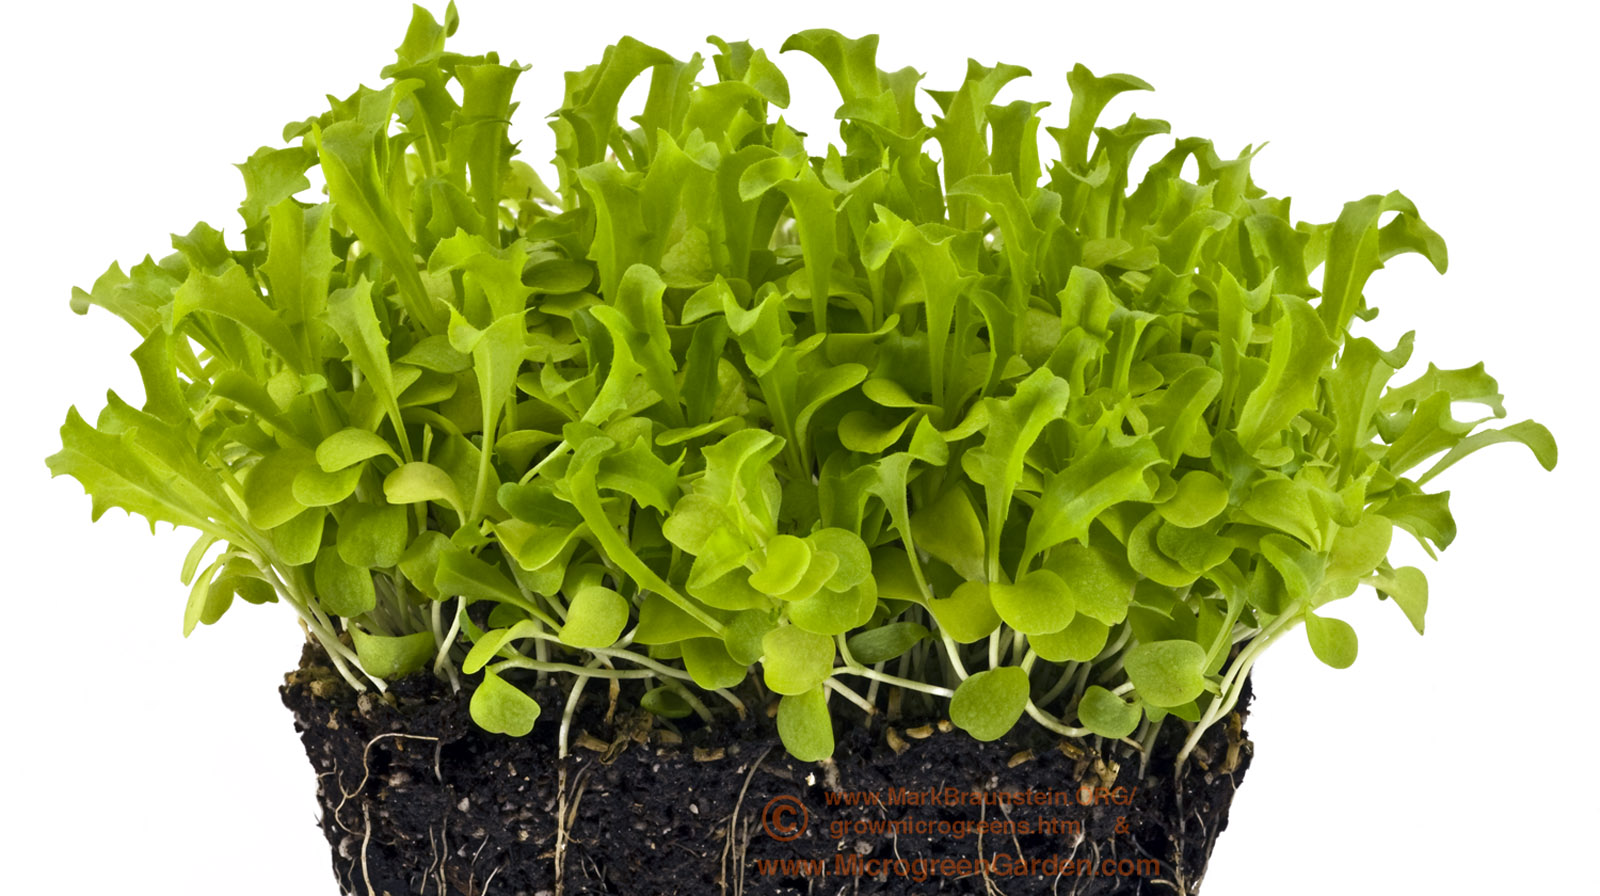 ENDIVE microgreens, 26 days since sown; true leaf stage